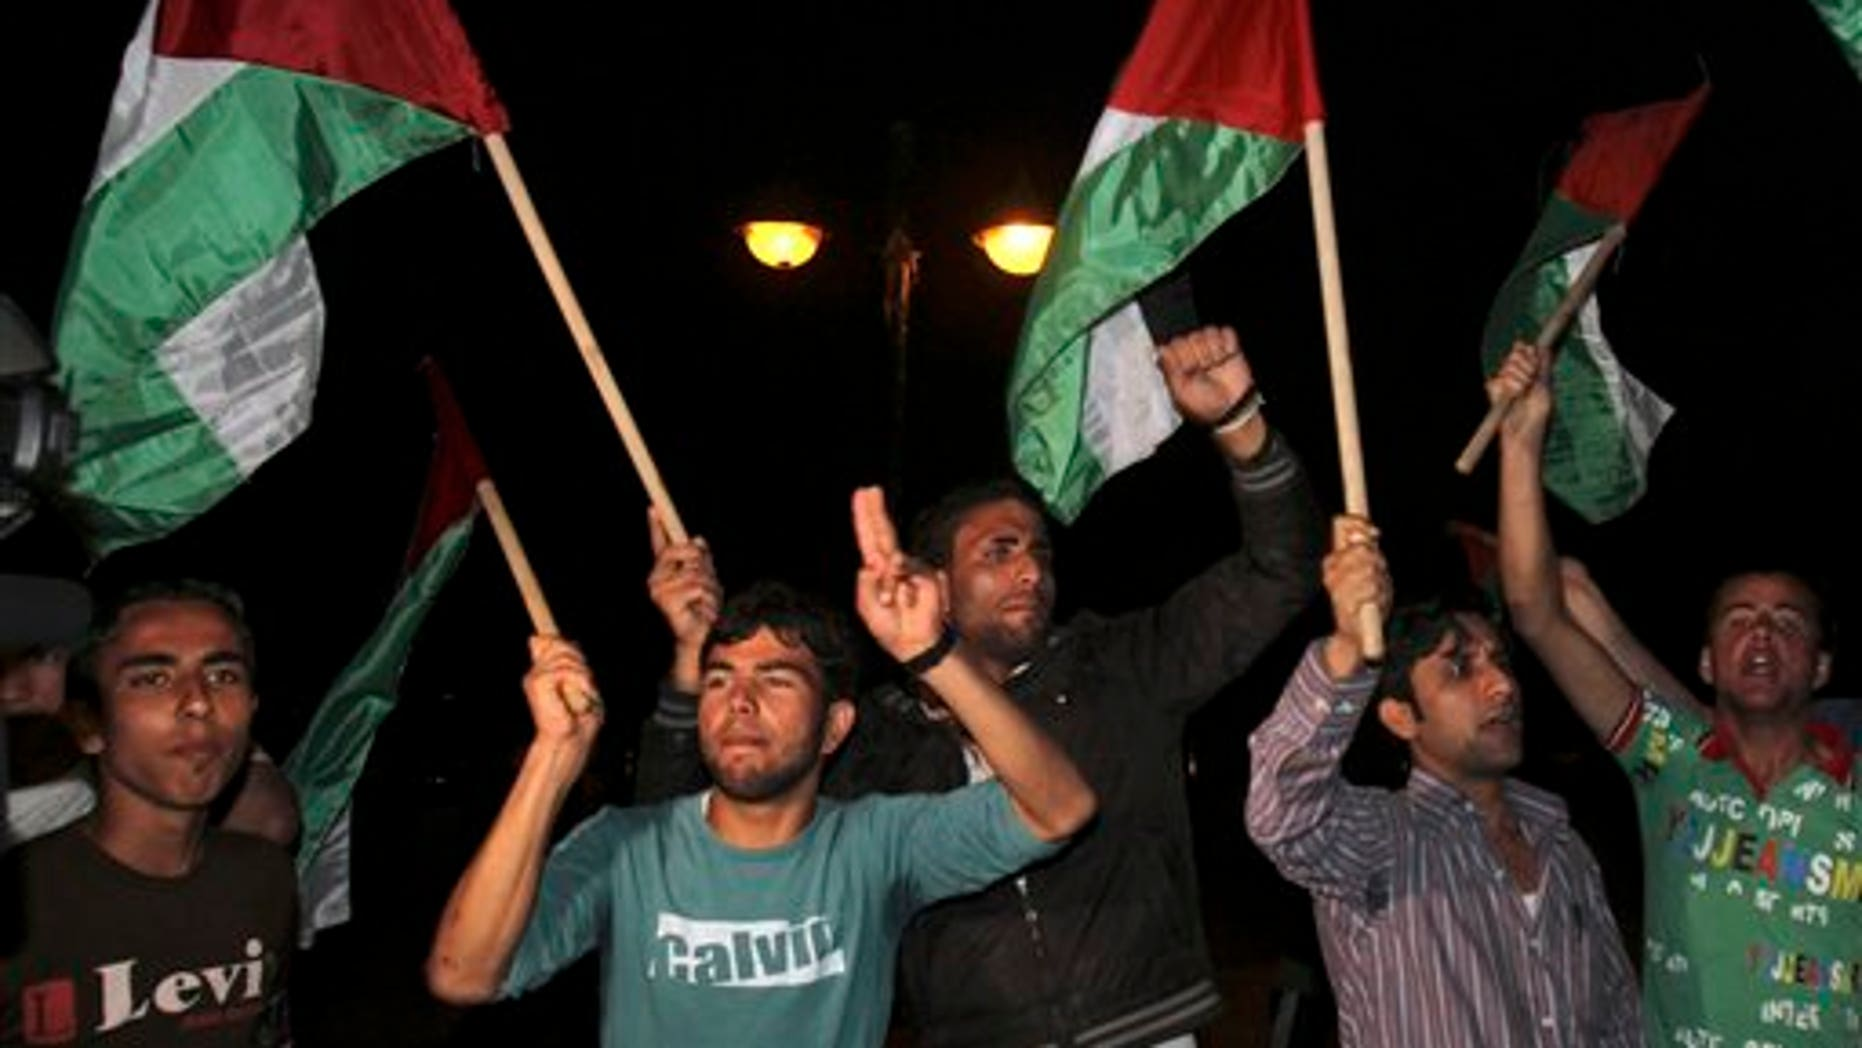 April 27: Palestinians wave flags and chant slogans in support of a reconciliation between the rival Fatah and Hamas movements, in Gaza City. Palestinians have reached initial agreement on reuniting their rival governments in the West Bank and Gaza, officials from both sides said Wednesday, a step that would remove a main obstacle in the way of peace efforts with Israel. (AP)